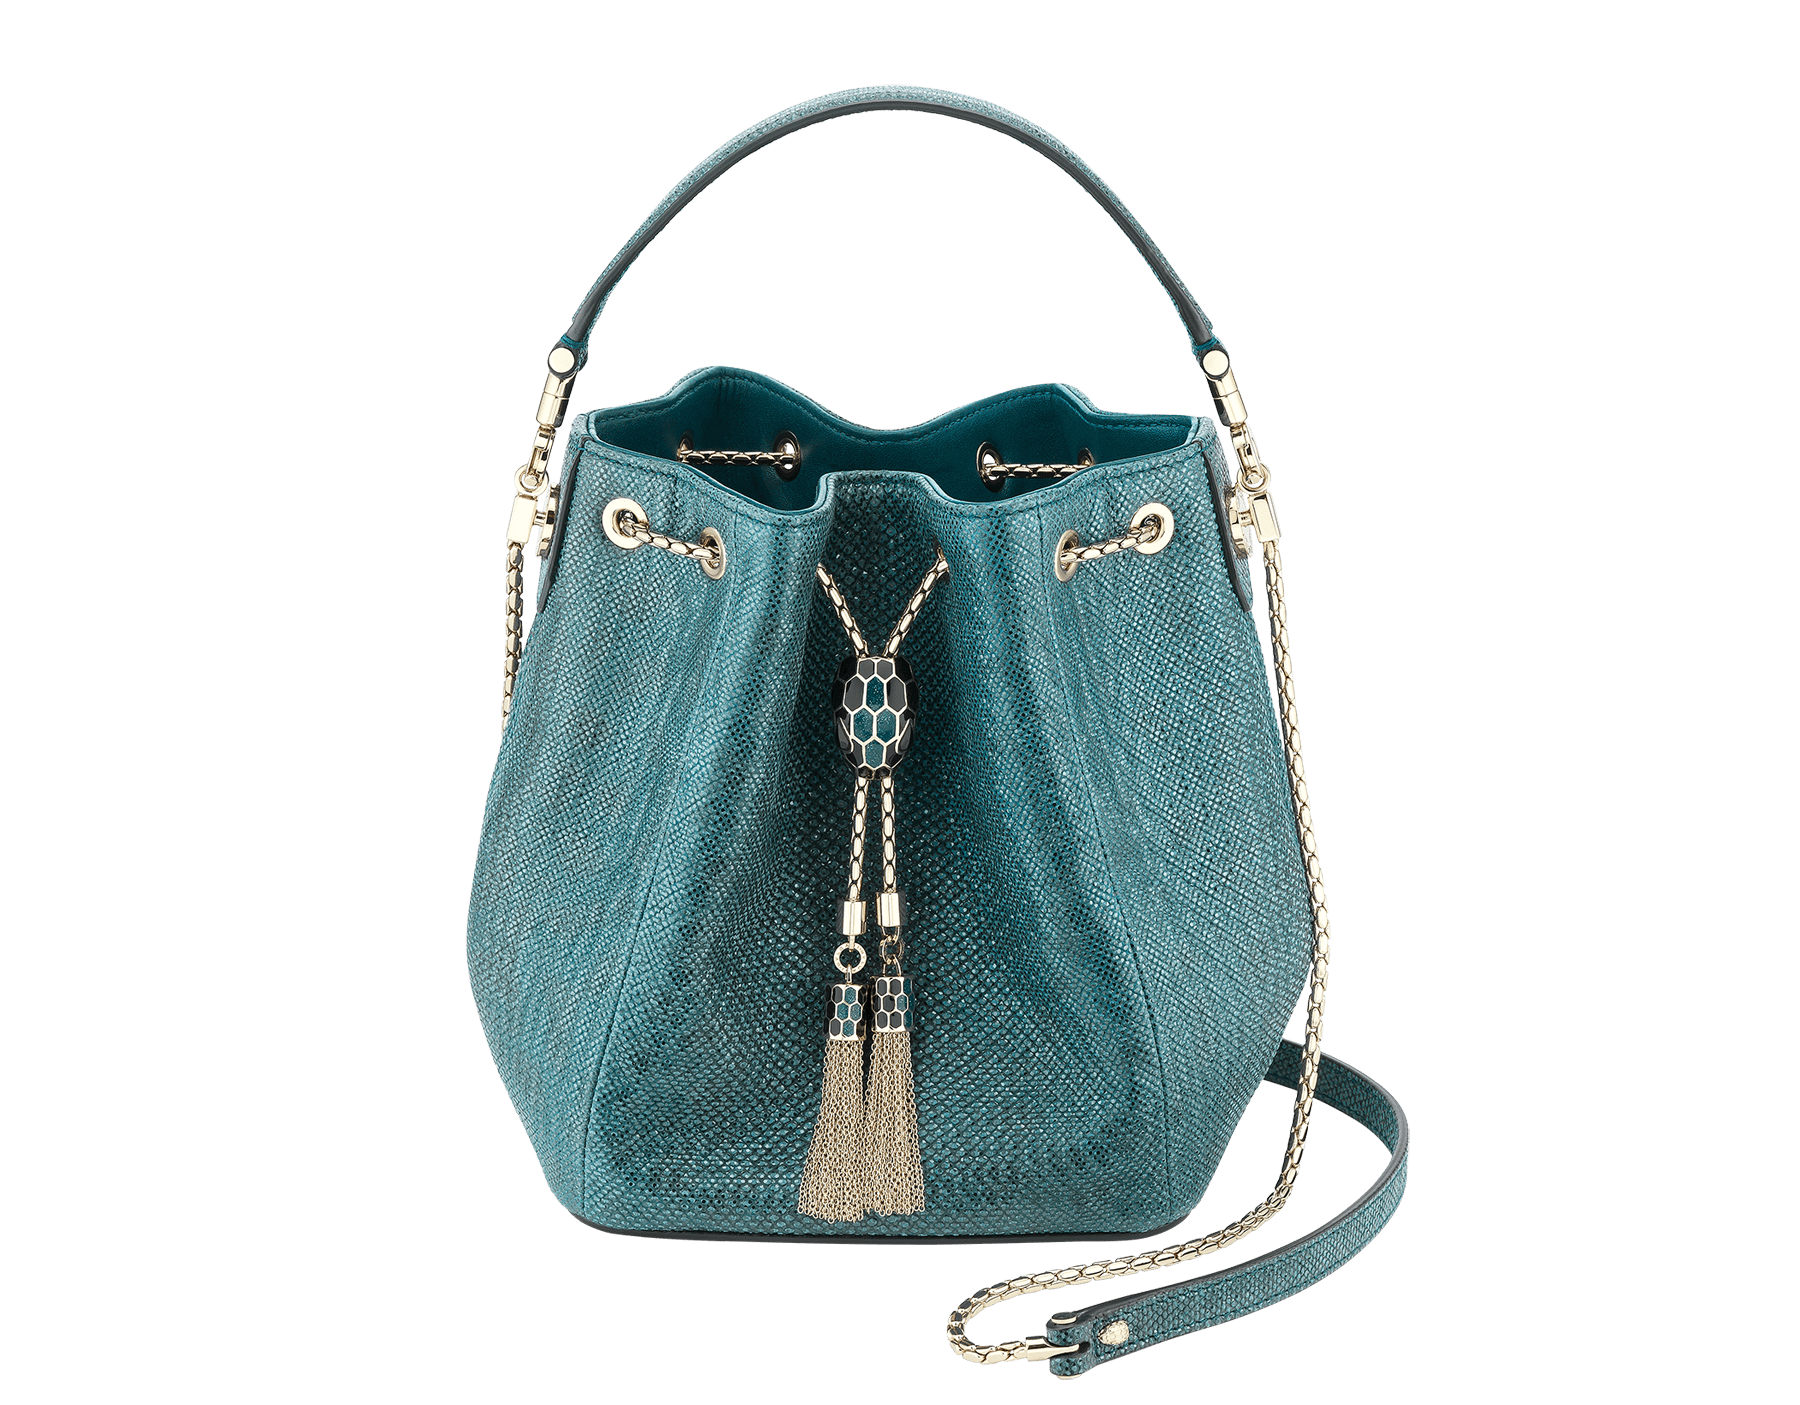 Bucket Serpenti Forever in deep jade metallic karung skin and deep jade nappa internal lining. Hardware in light gold plated brass and snakehead closure in black and glitter deep jade enamel, with eyes in black onyx. 287950 image 1